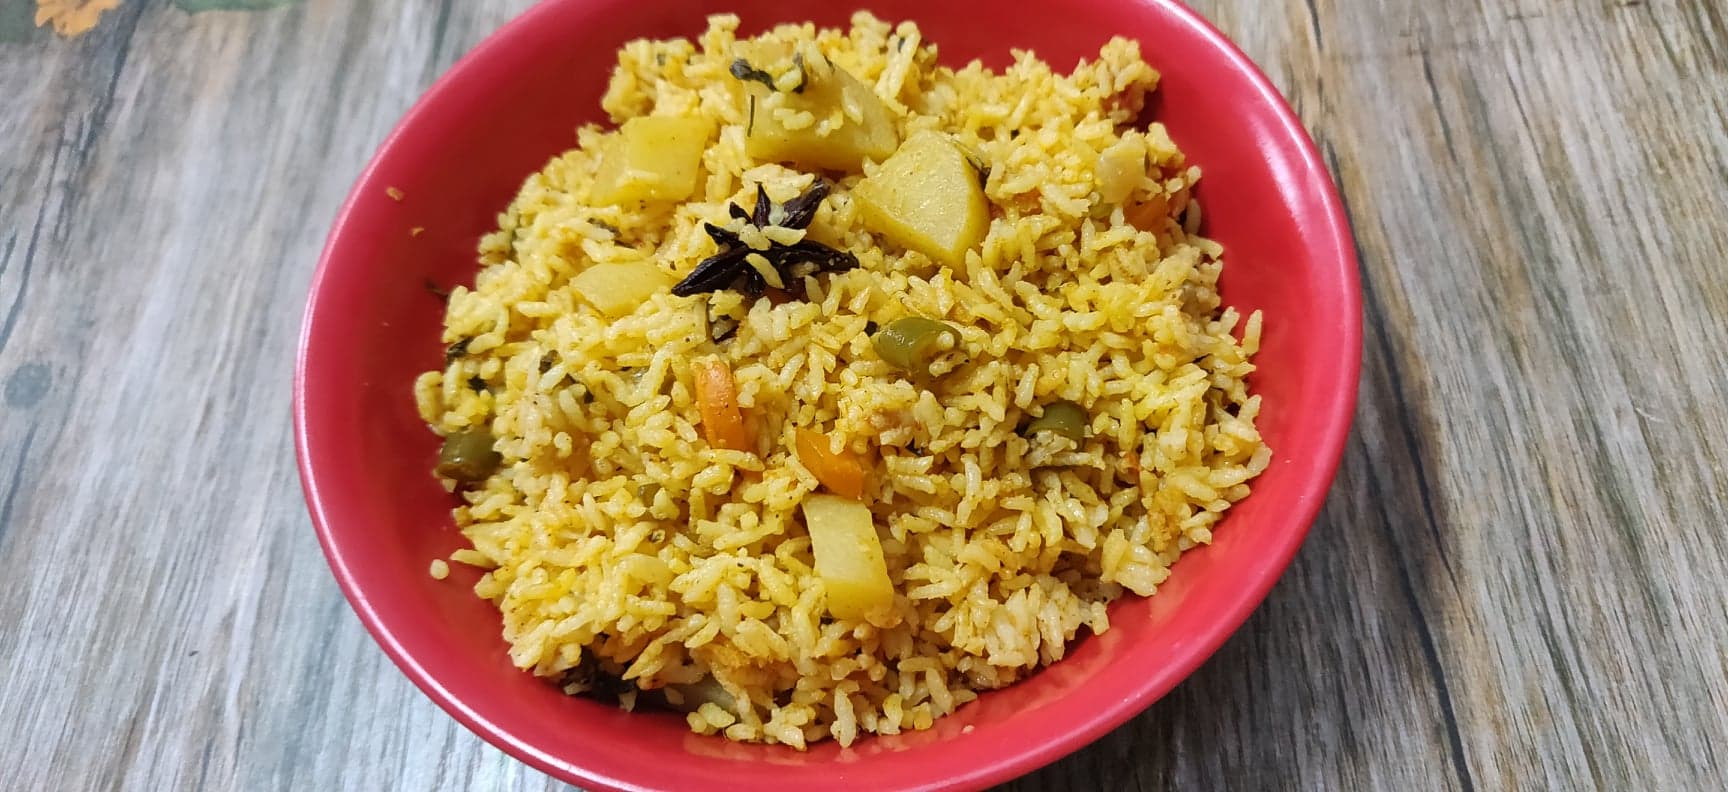 seeraga_samba_vegetable_biryani - 84400292_2543745999226667_6956887261833068544_n